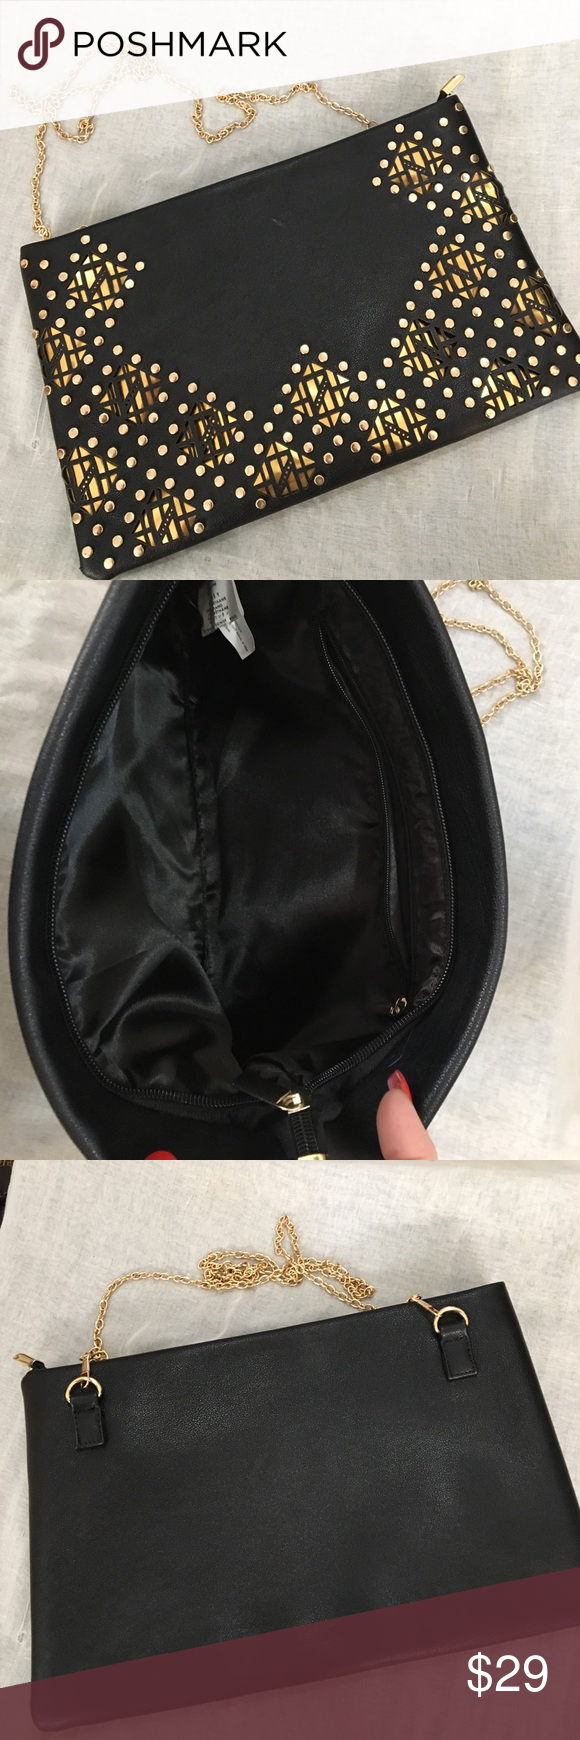 NEW Black & Gold Cutout Vegan Envelope Clutch Perfect with everything Clutch with chain and NWOT.   12x8.  So it's not your average evening bag. Bags Clutches & Wristlets